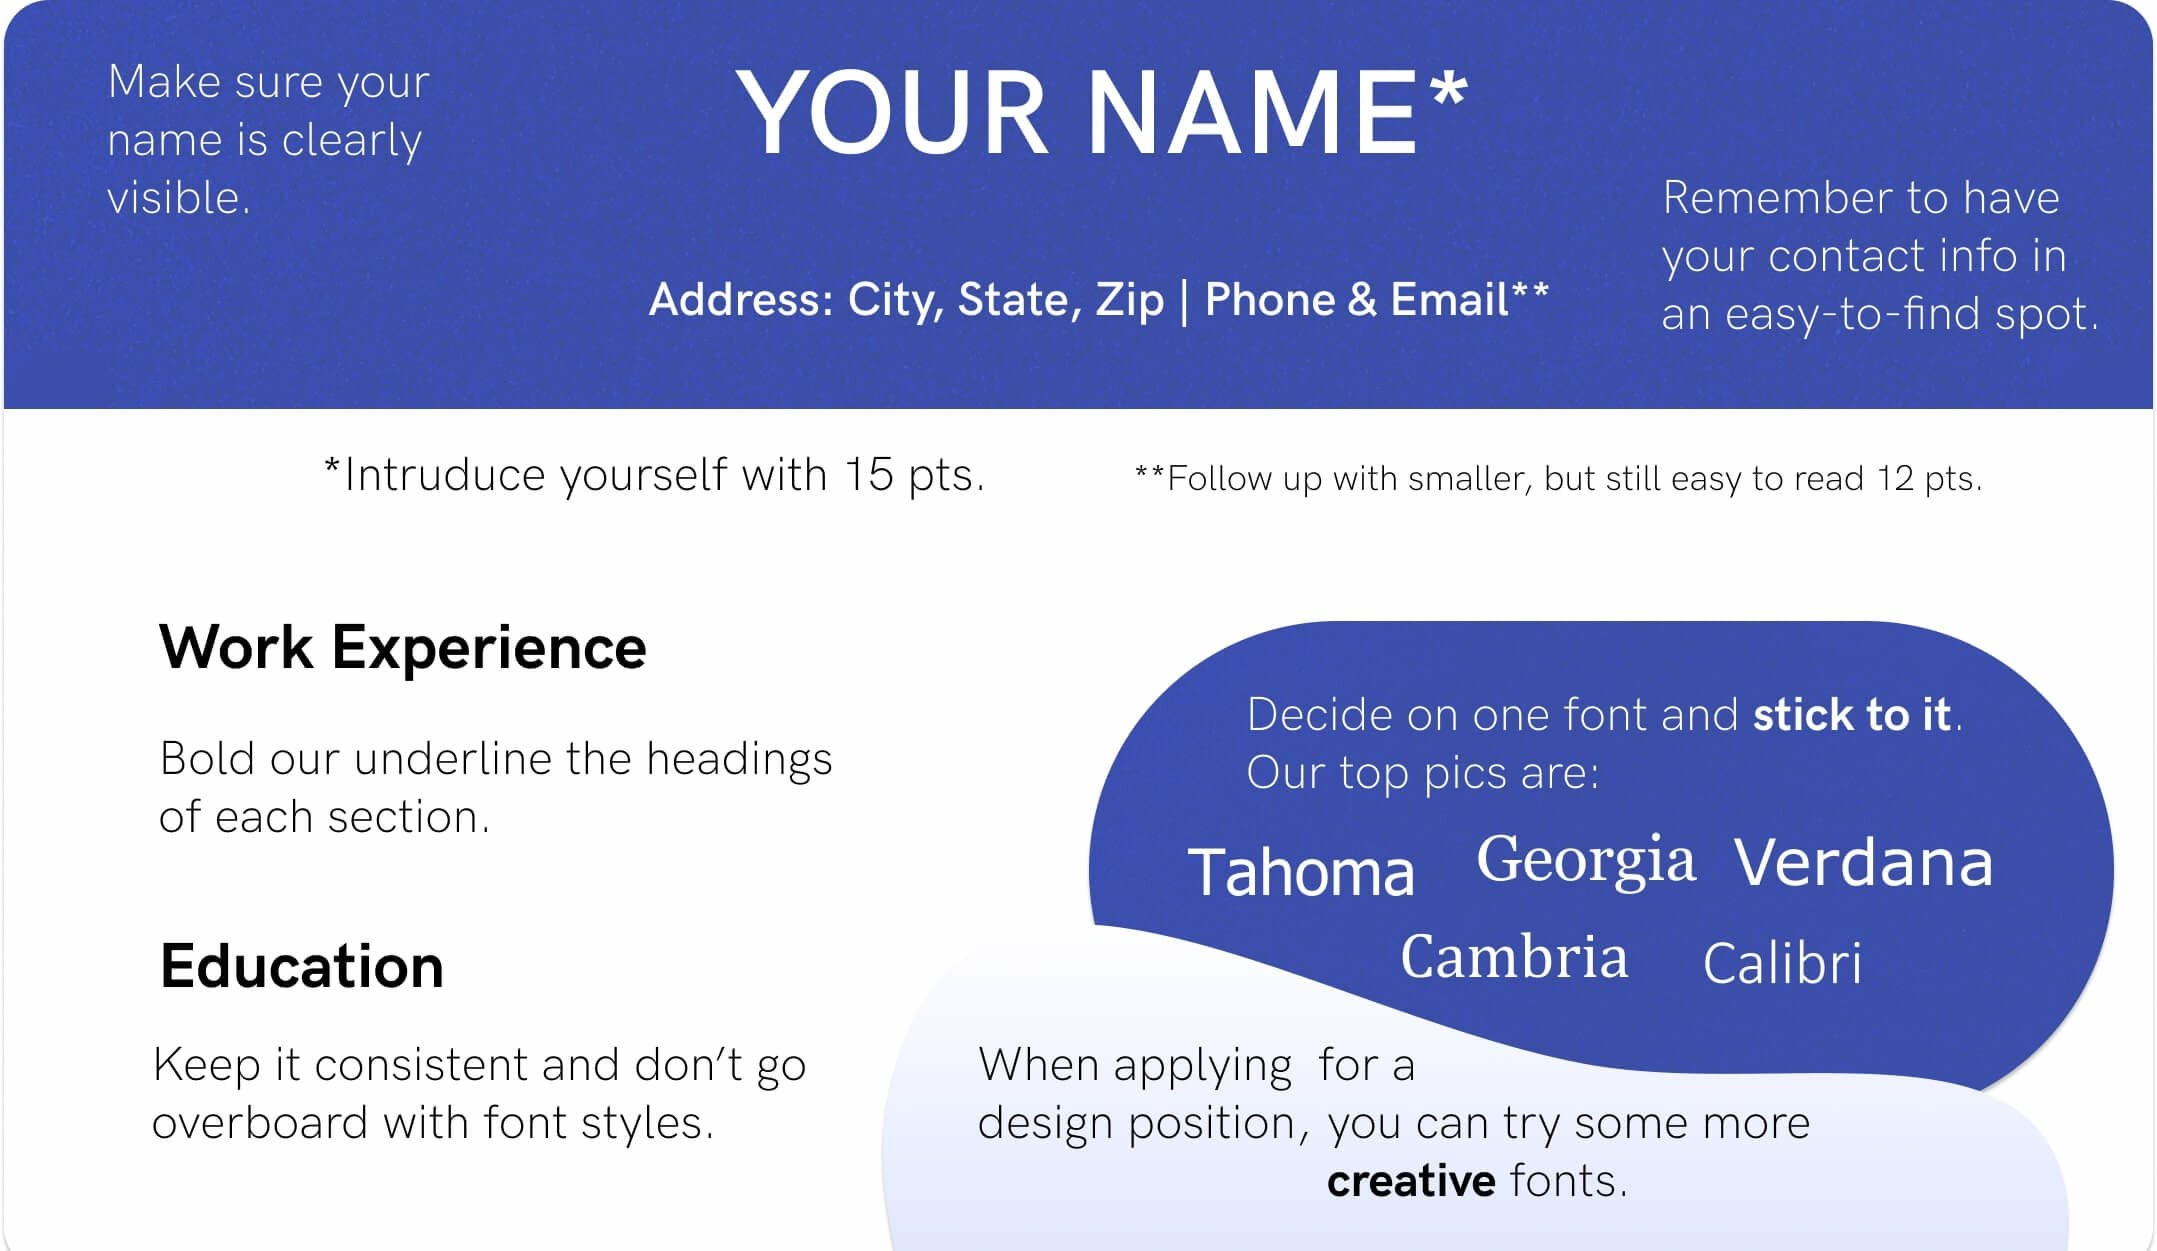 best font for resume size standard professional pairings fonts example writing services Resume Best Font Size For Resume